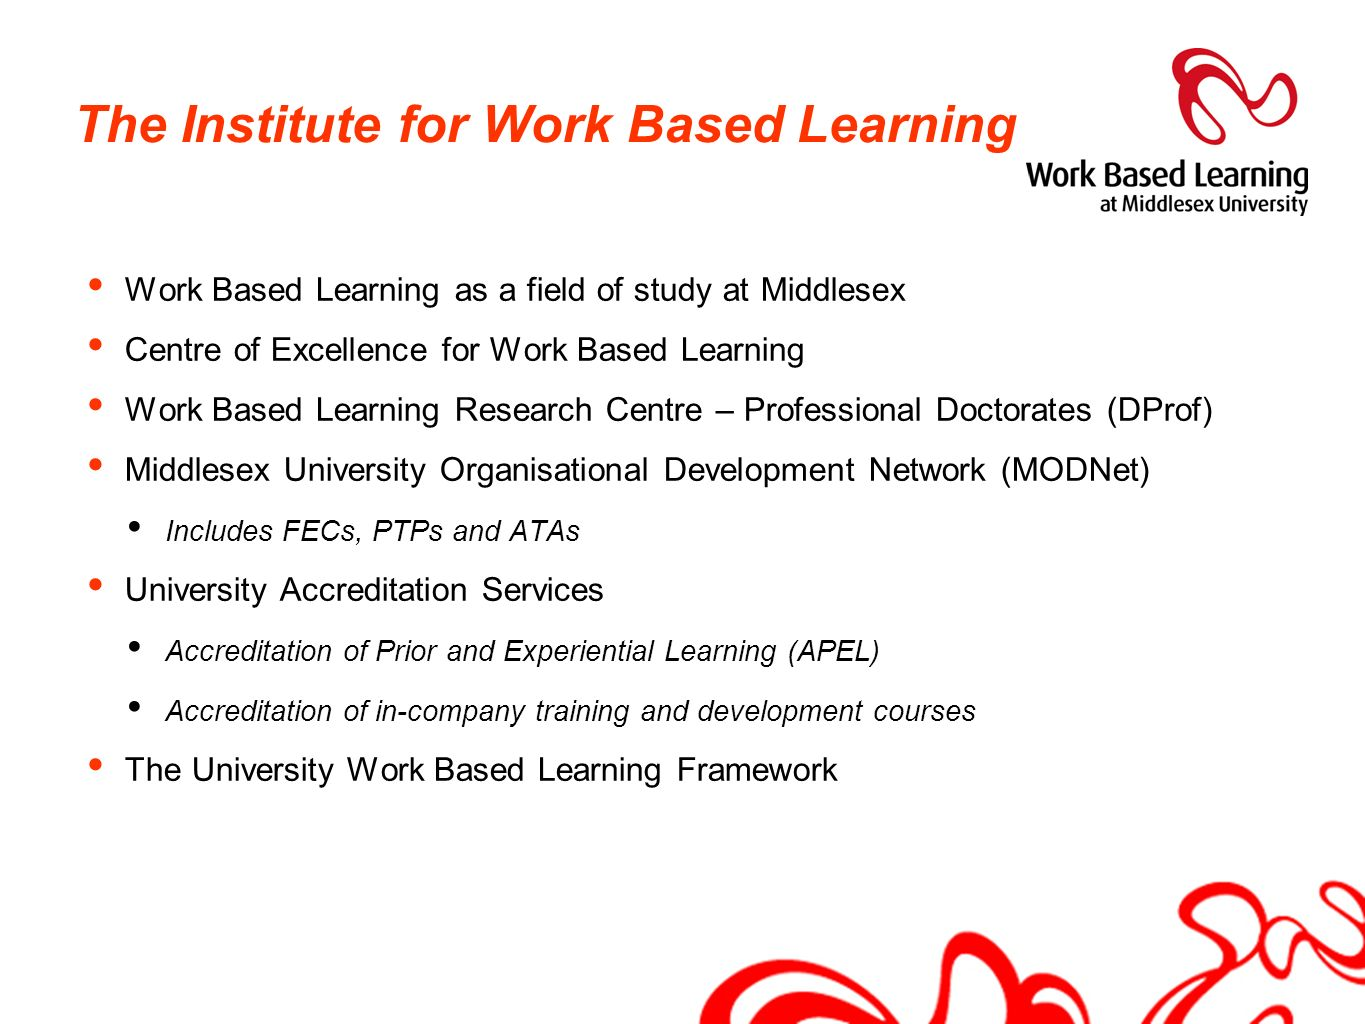 The Institute for Work Based Learning